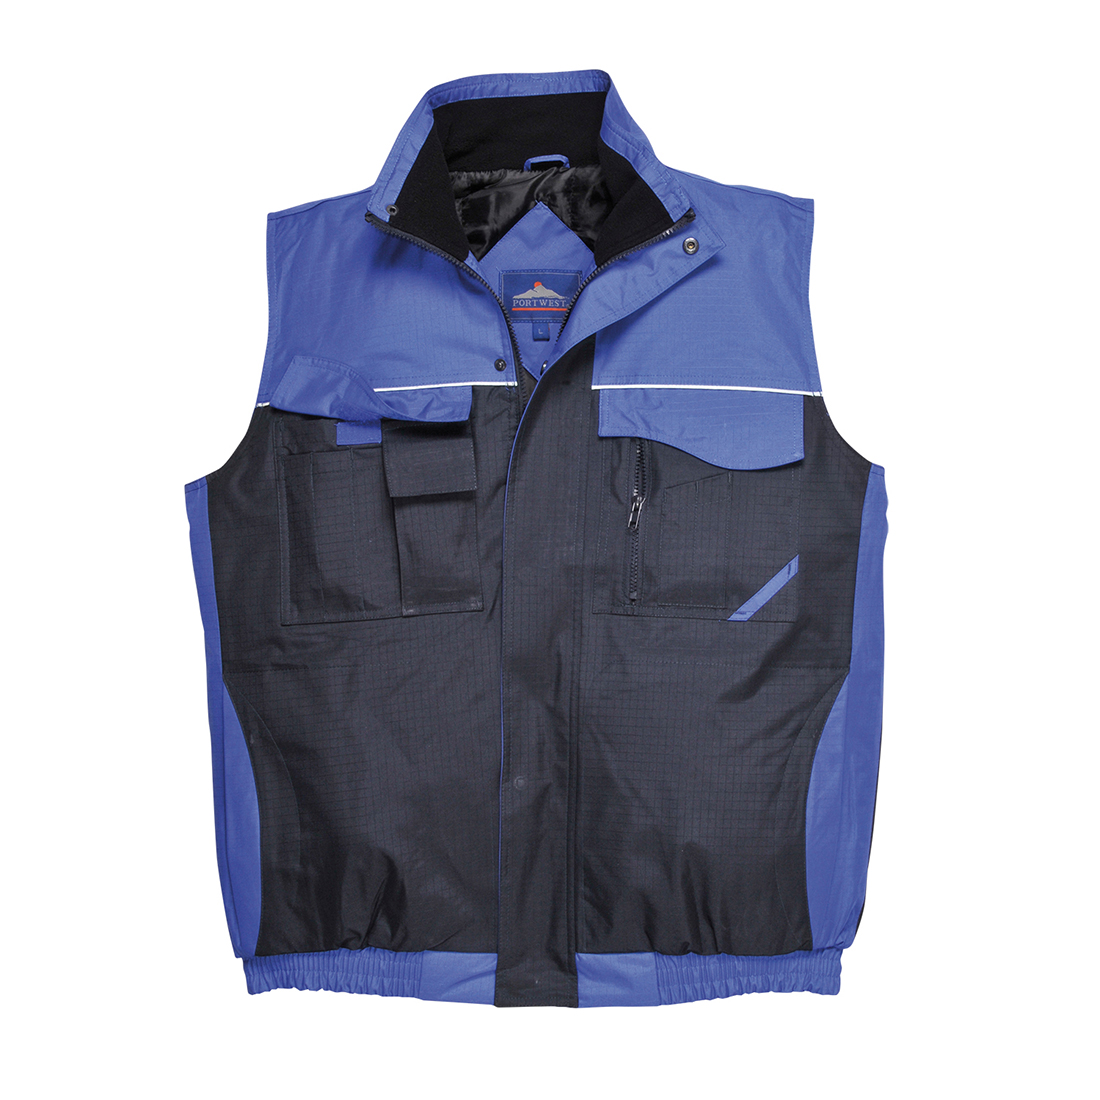 Portwest RS Two-Tone Bodywarmer - S560